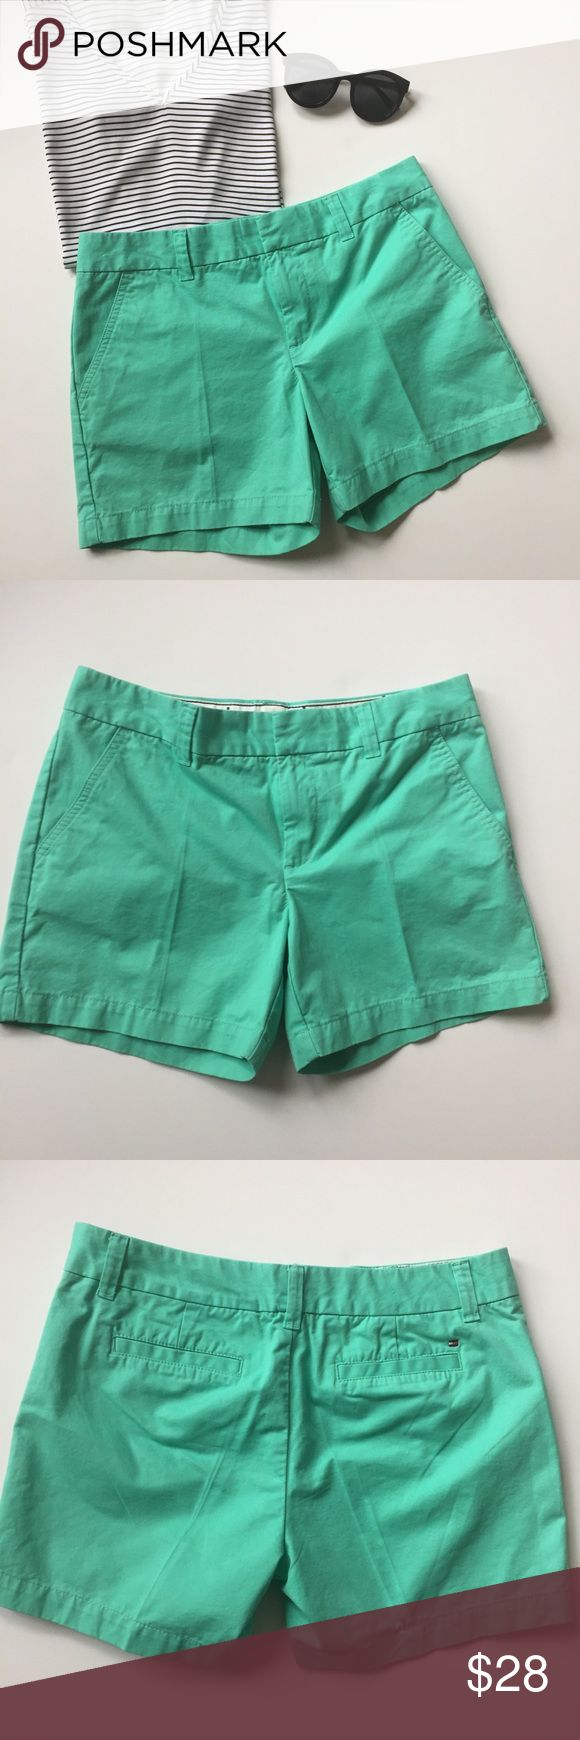 """Mint Tommy Hilfiger Shorts Mint green Tommy Hilfiger shorts that are in MINT condition (I crack myself up!). Seriously, they are in perfect condition. 5"""" inseam makes them terrible for Miley Cyrus concerts, Spring Break contests, and biker bars.. but perfect for sipping an Arnold Palmer at the country club or going to class & making a good impression. Shorts are great for ladies with some extra junk in the trunk (but not too loose for less curvy ladies!). Perfect shorts for spring and…"""